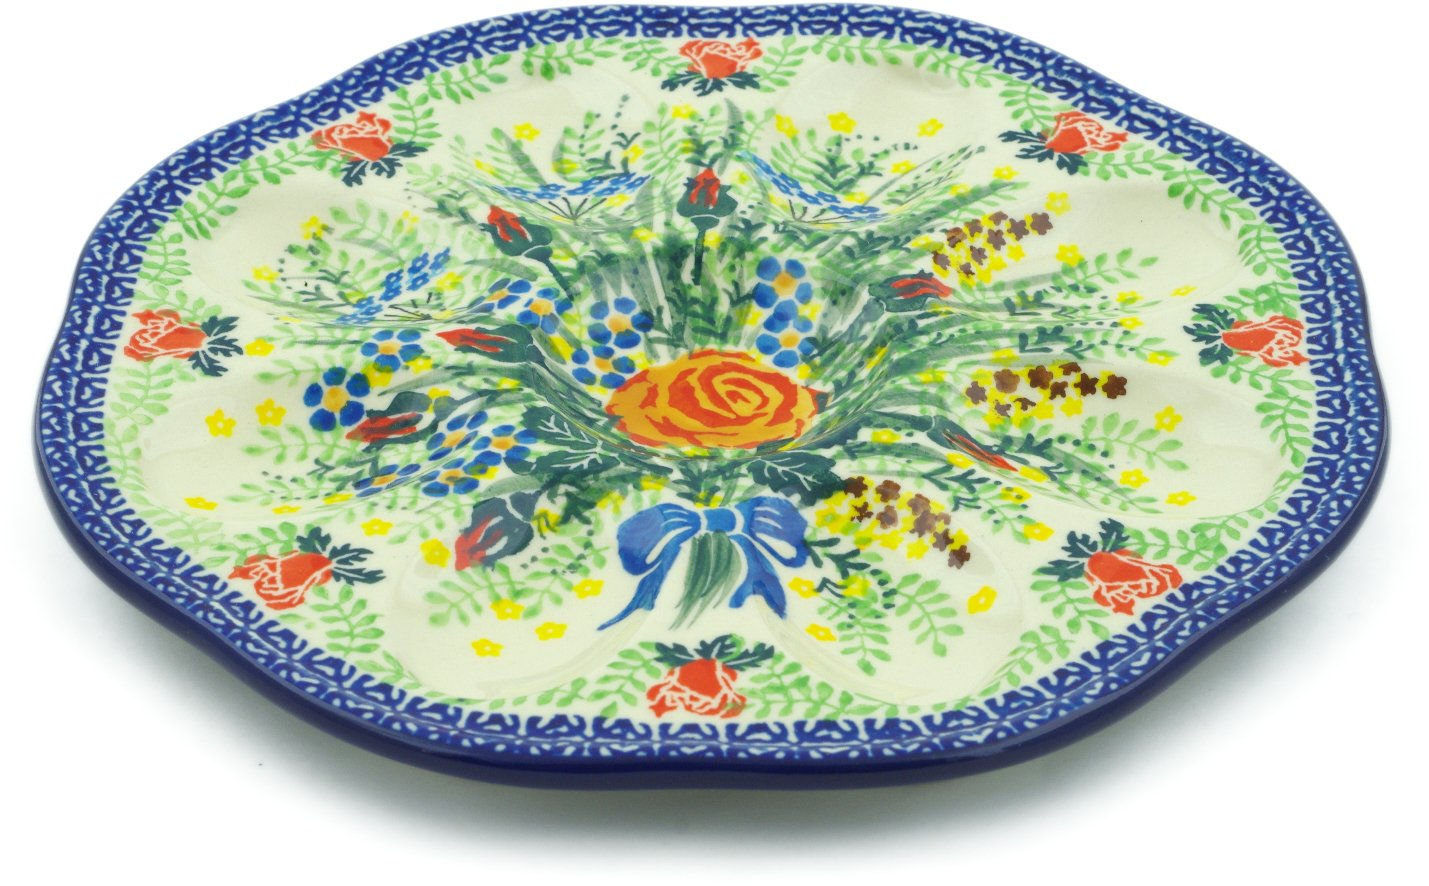 Polish Pottery 9¼-inch Egg Plate made by Ceramika Artystyczna (Sunset Rose Bouquet Theme) Signature UNIKAT + Certificate of Authenticity